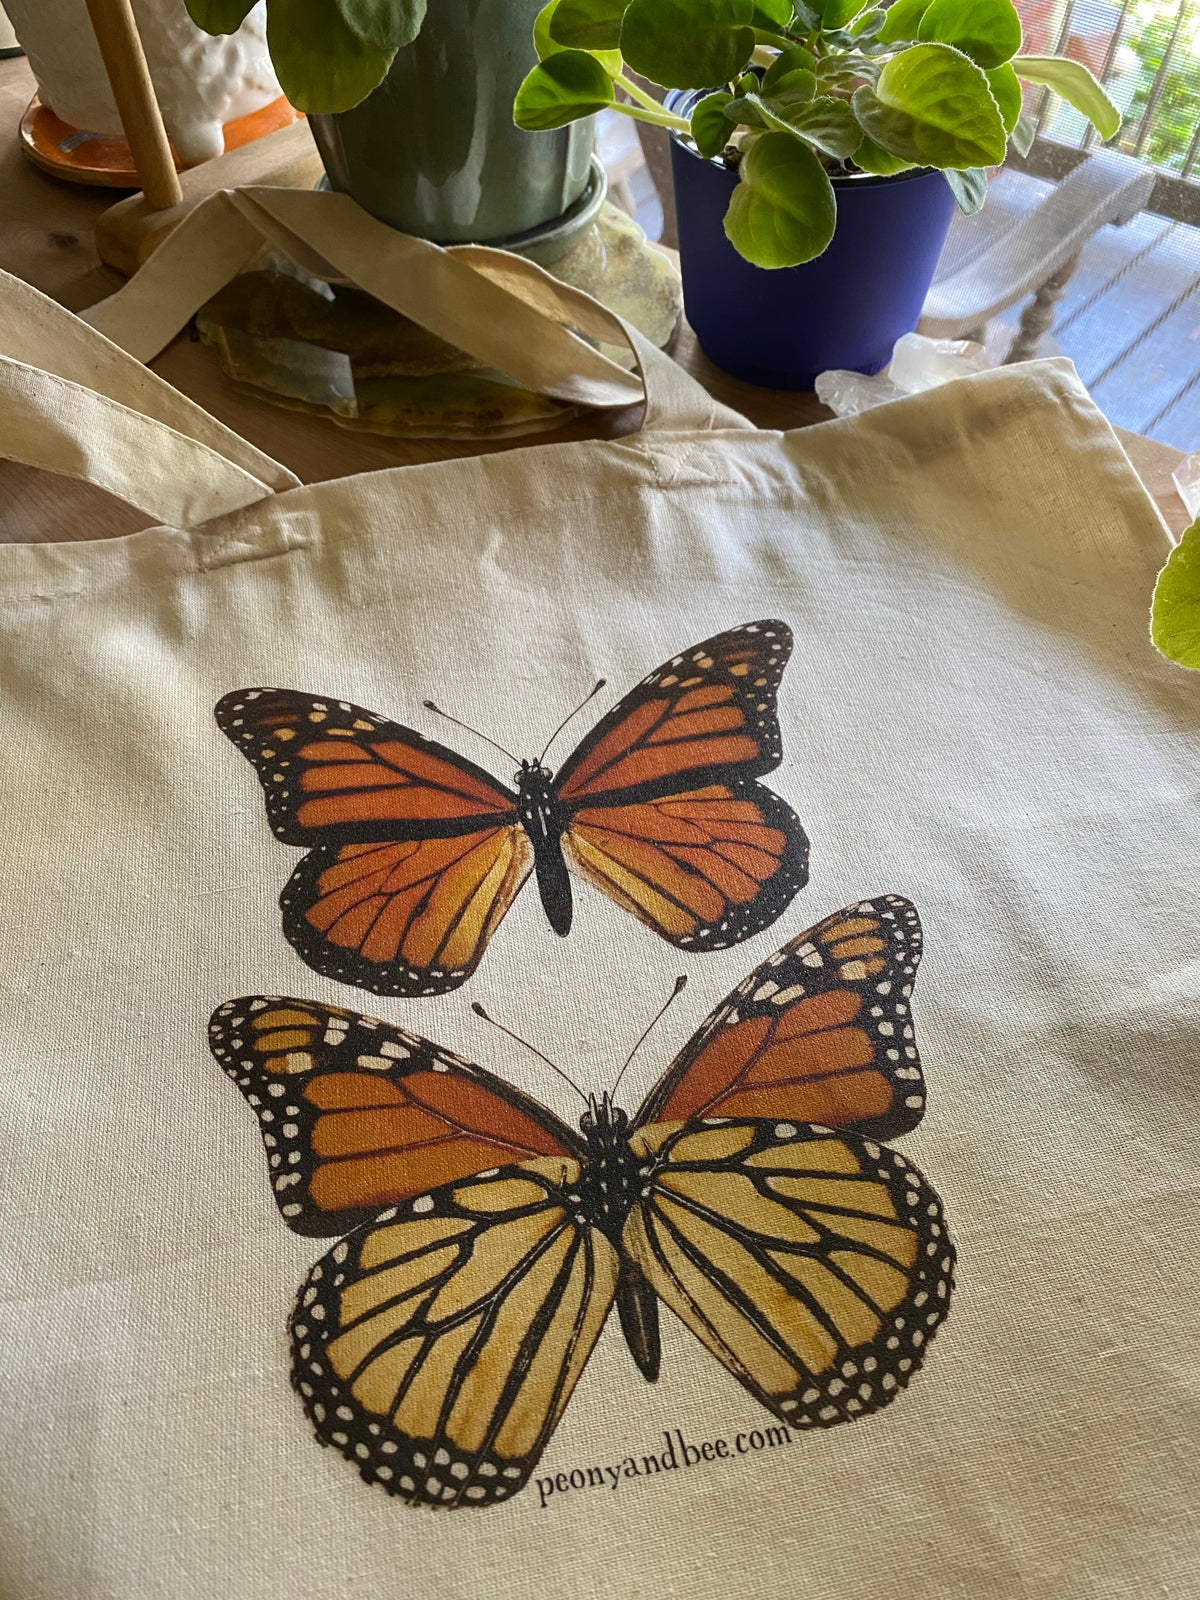 Image of Lightweight Canvas Tote - Monarch